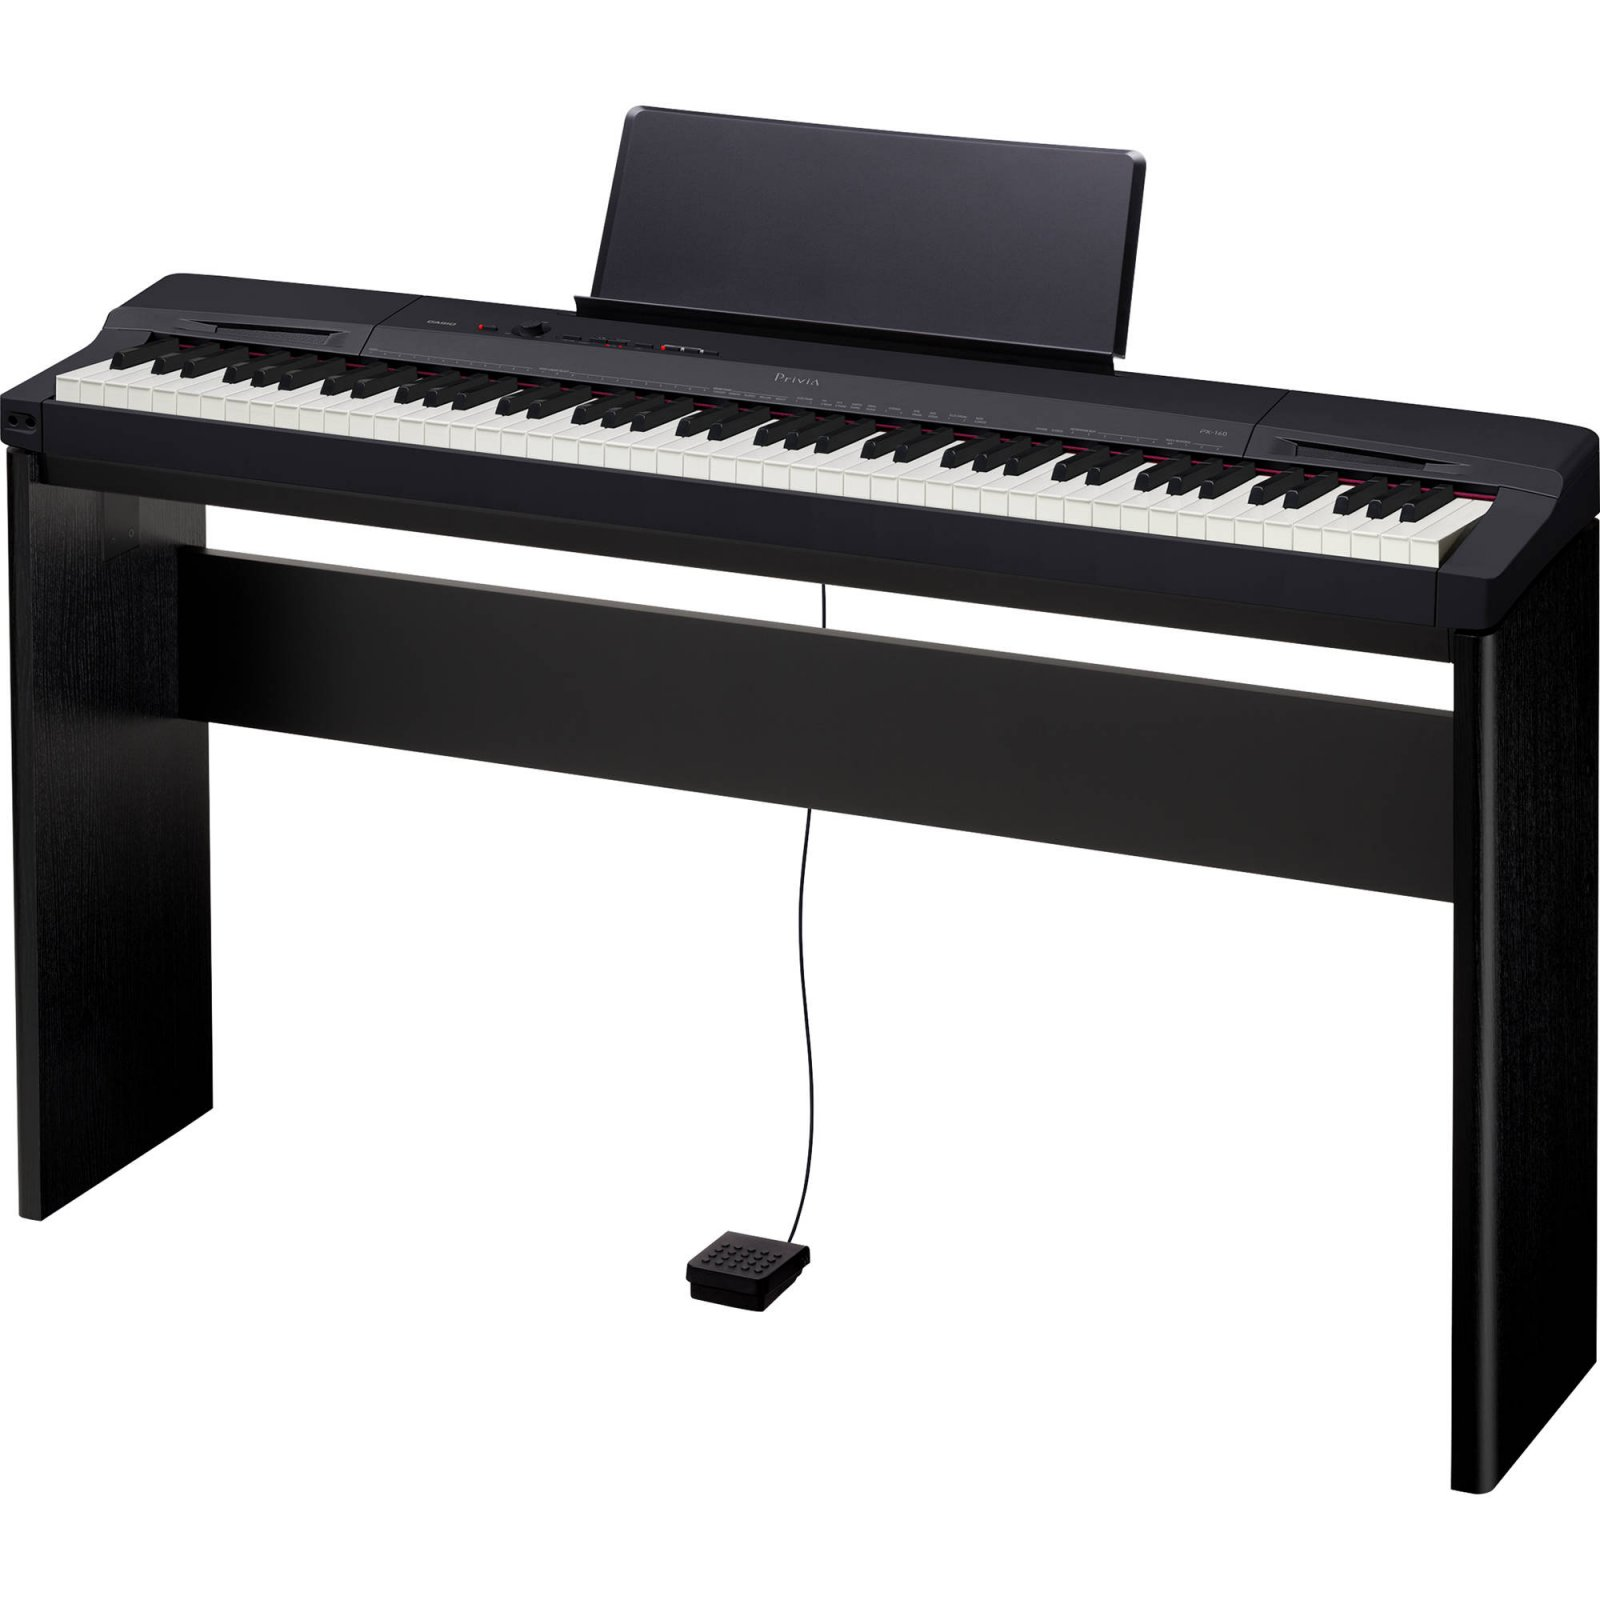 PRIVIA 88 KEYBOARD PX-160